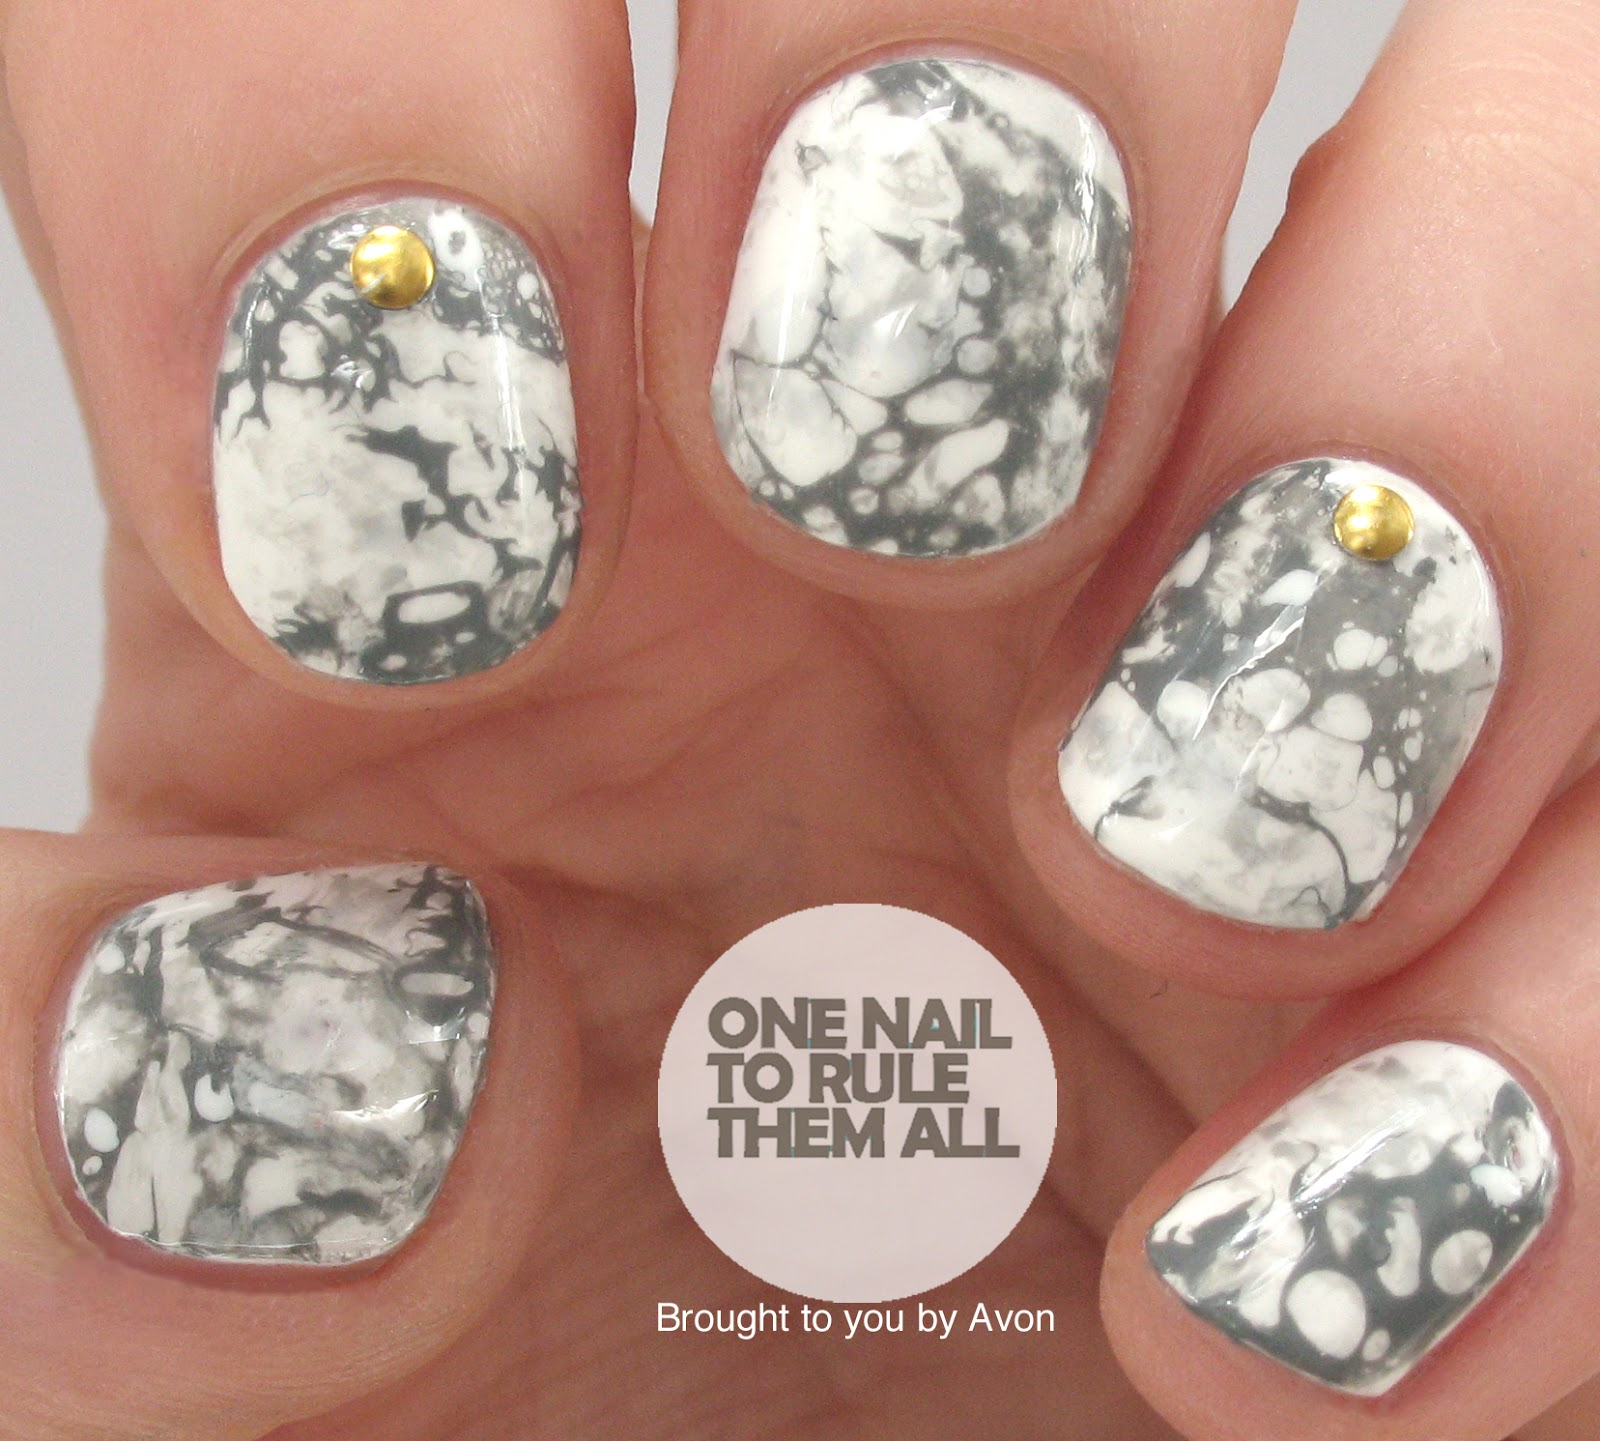 One Nail To Rule Them All: Stone Marble Nail Art for Avon